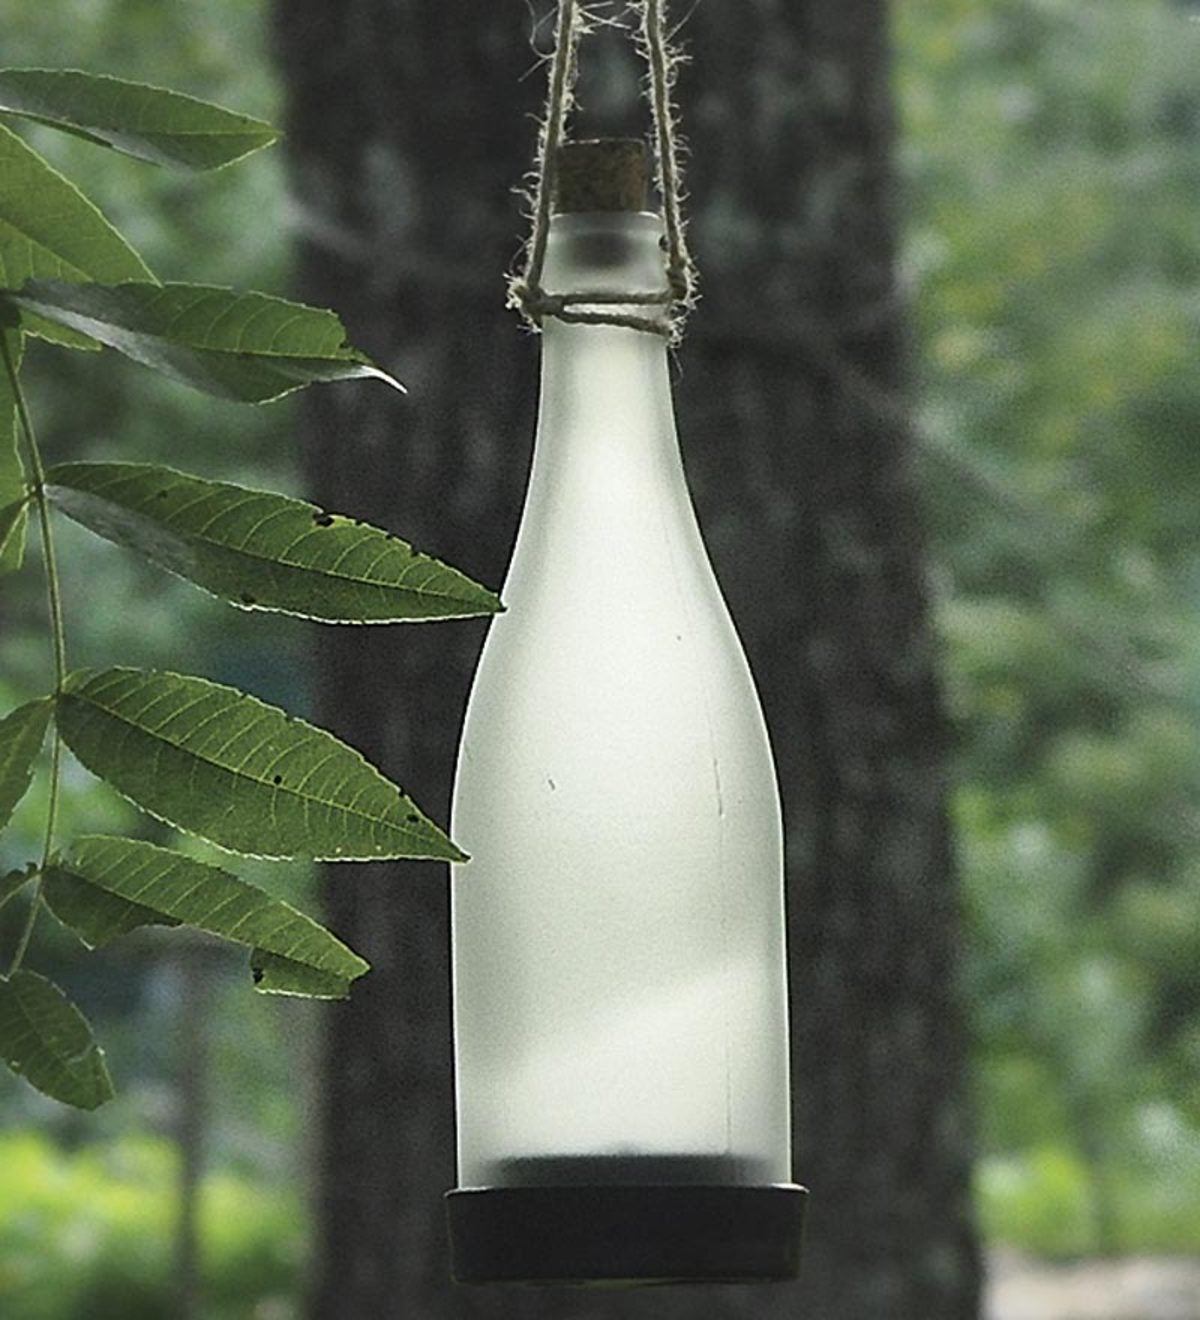 Metal Bottle Tree With Set of 10 Solar-Powered Bottles - White